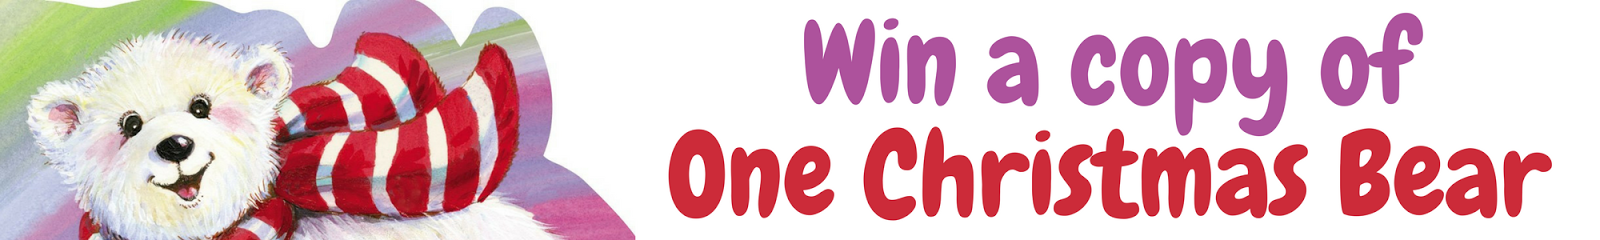 Win 1 of 5 Copies of One Christmas Bear